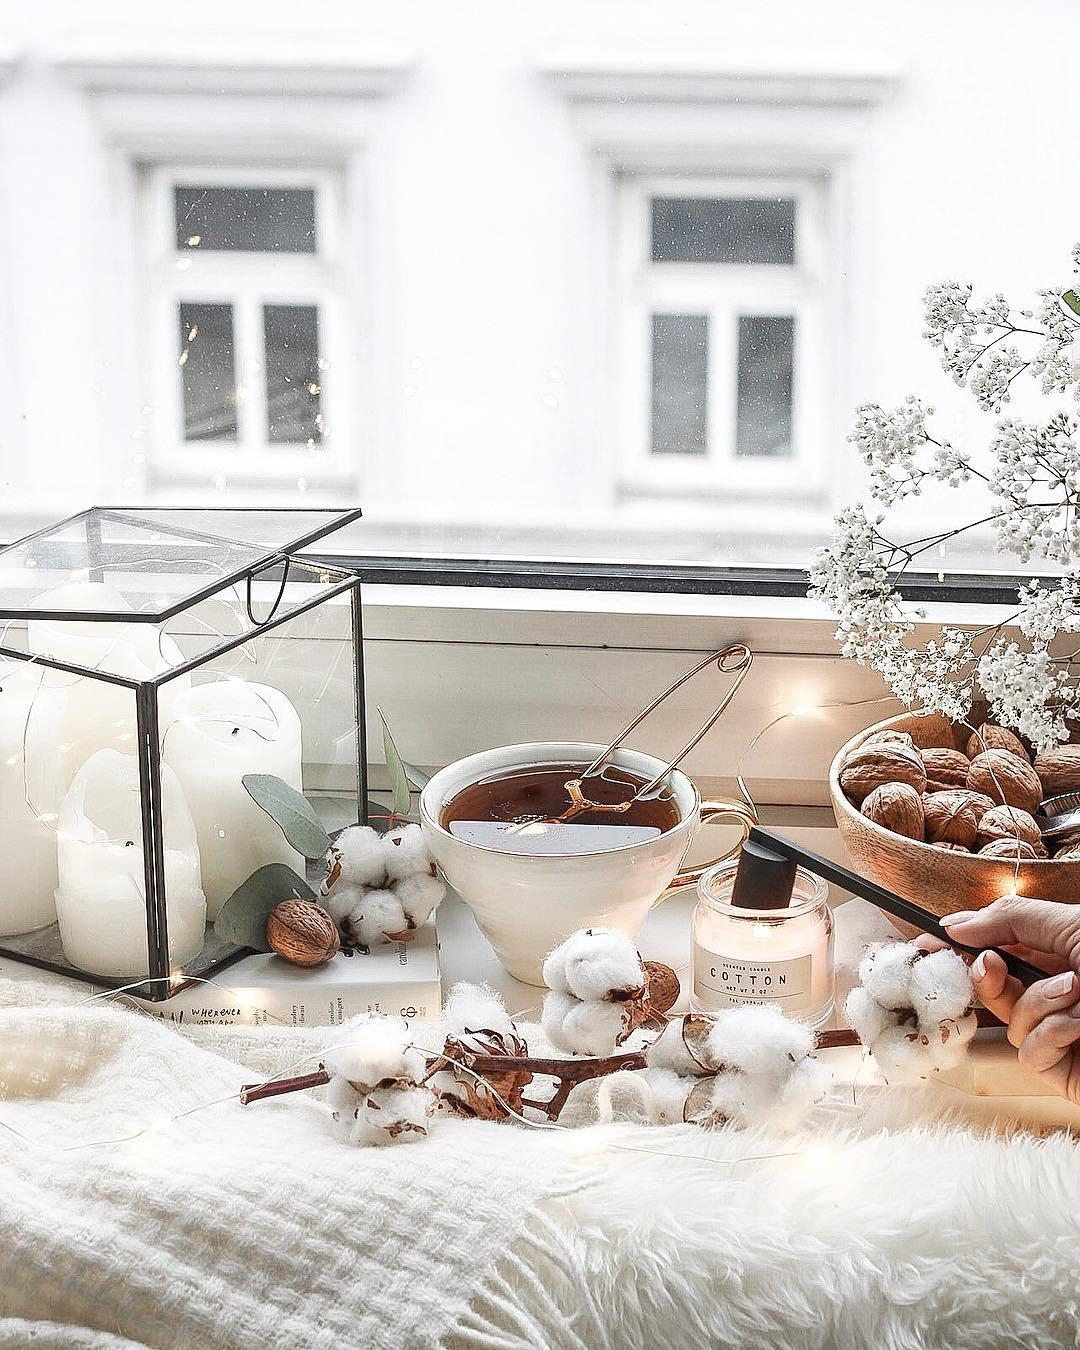 It's #tea time!